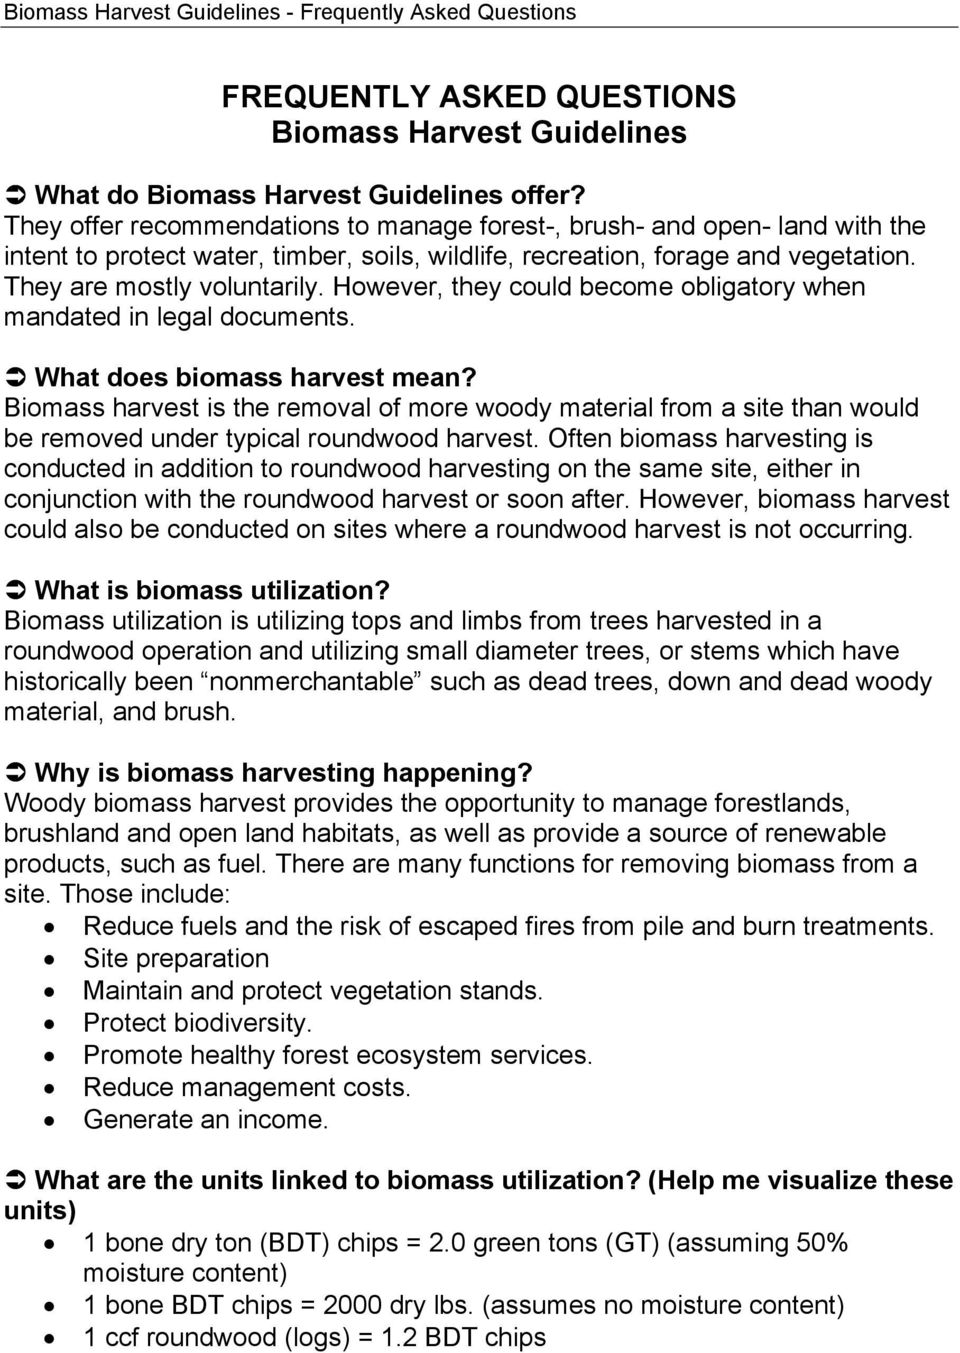 However, they could become obligatory when mandated in legal documents. What does biomass harvest mean?